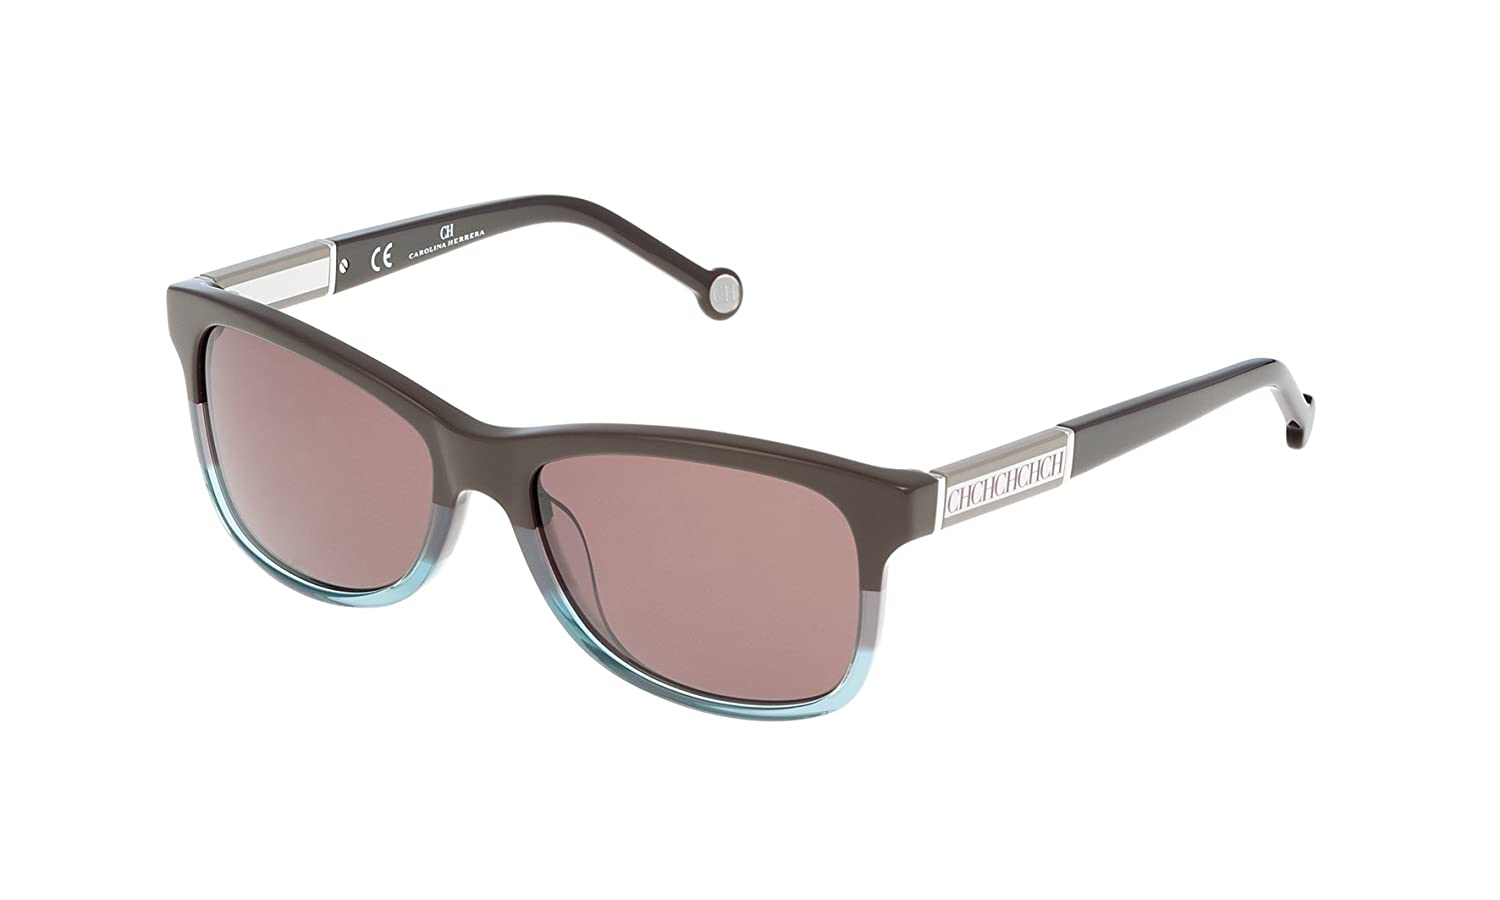 Ladies Sunglasses Carolina Herrera SHE594550AM5 at Amazon ...